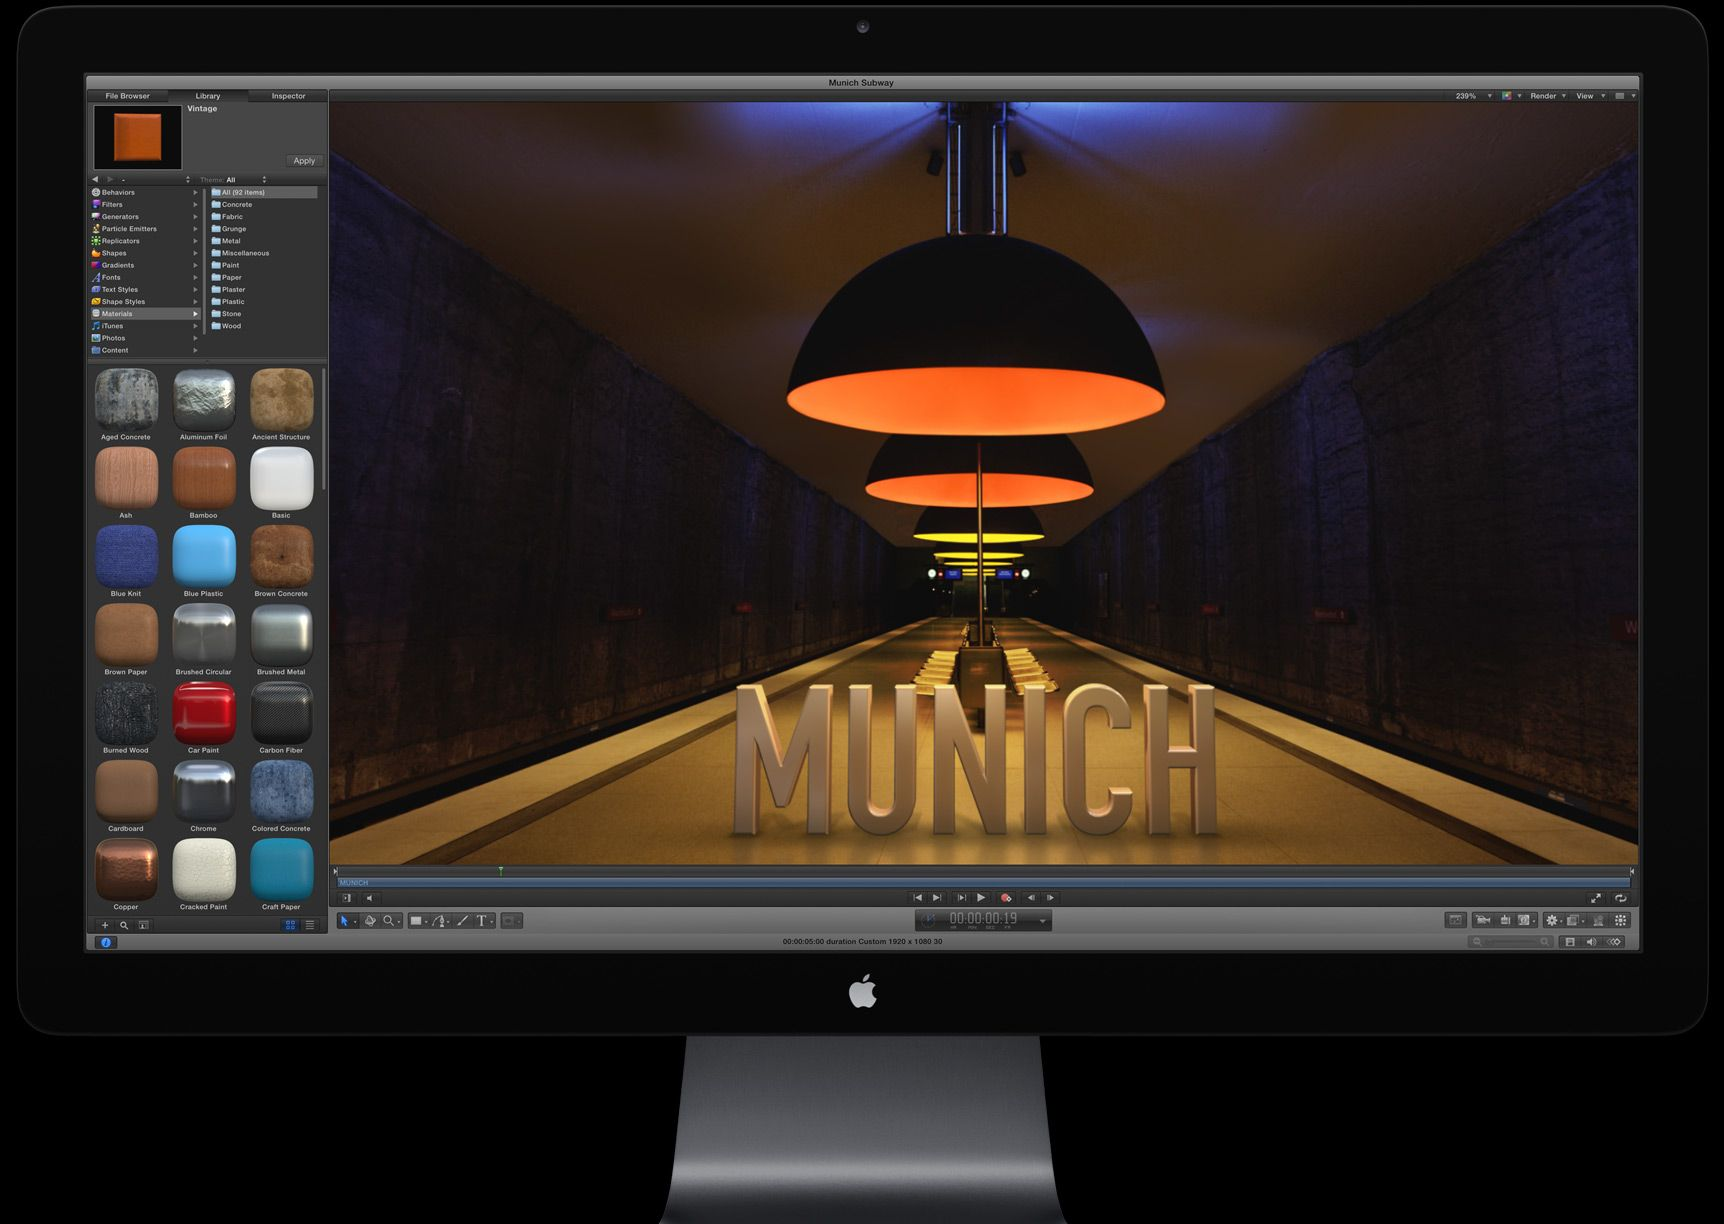 Apple - Motion 5 - Special Effects - Buy $50 - Overview